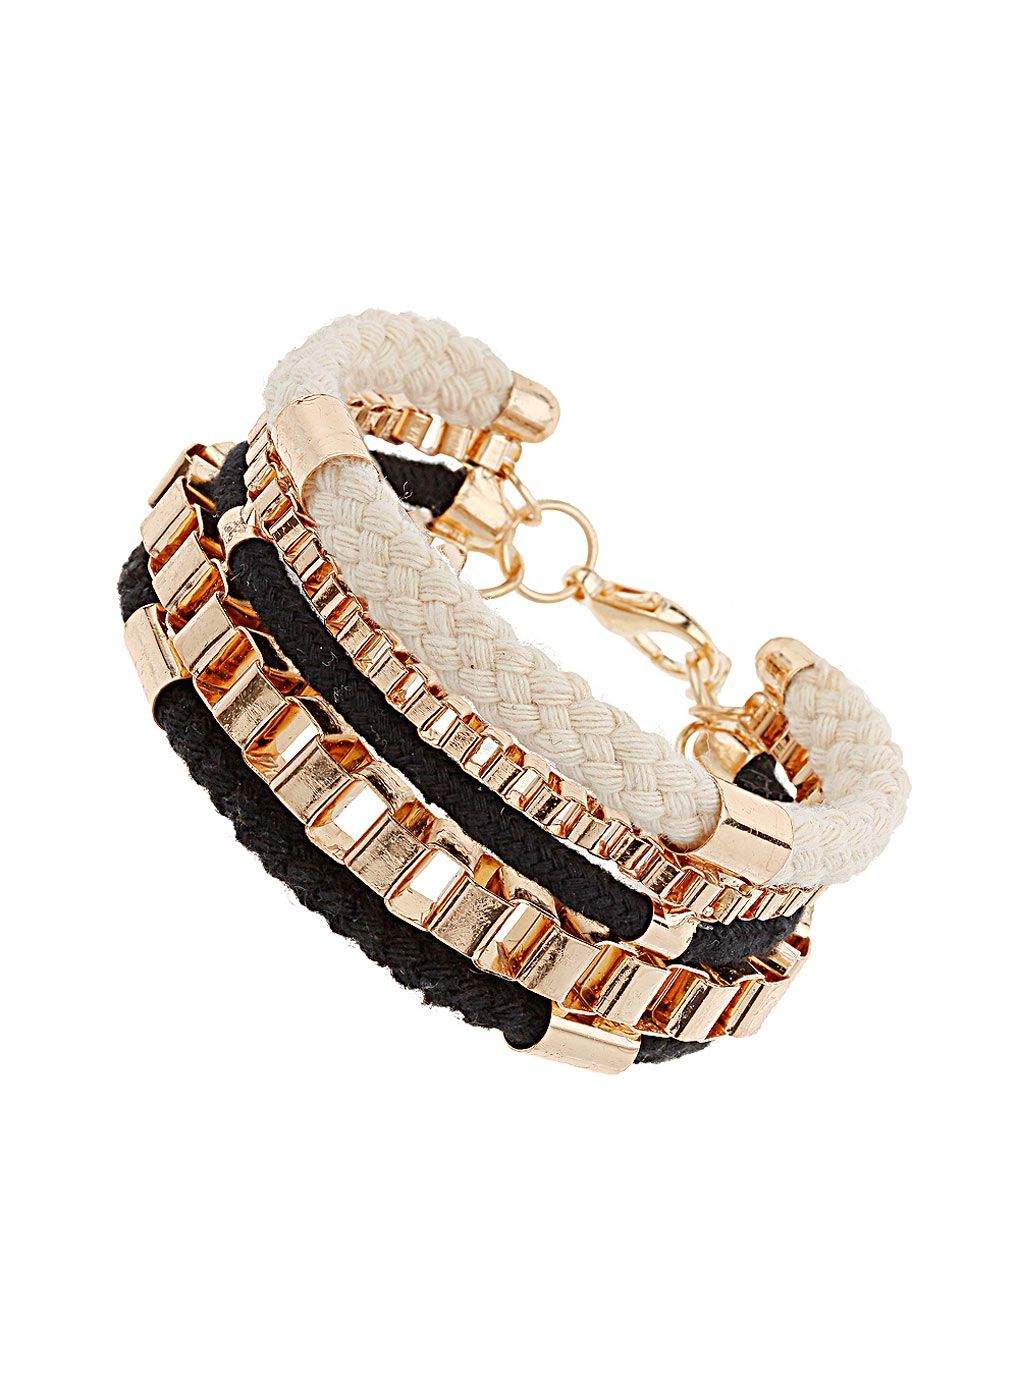 Cord bracelet i love that it is ropecord yet also shiny gold it